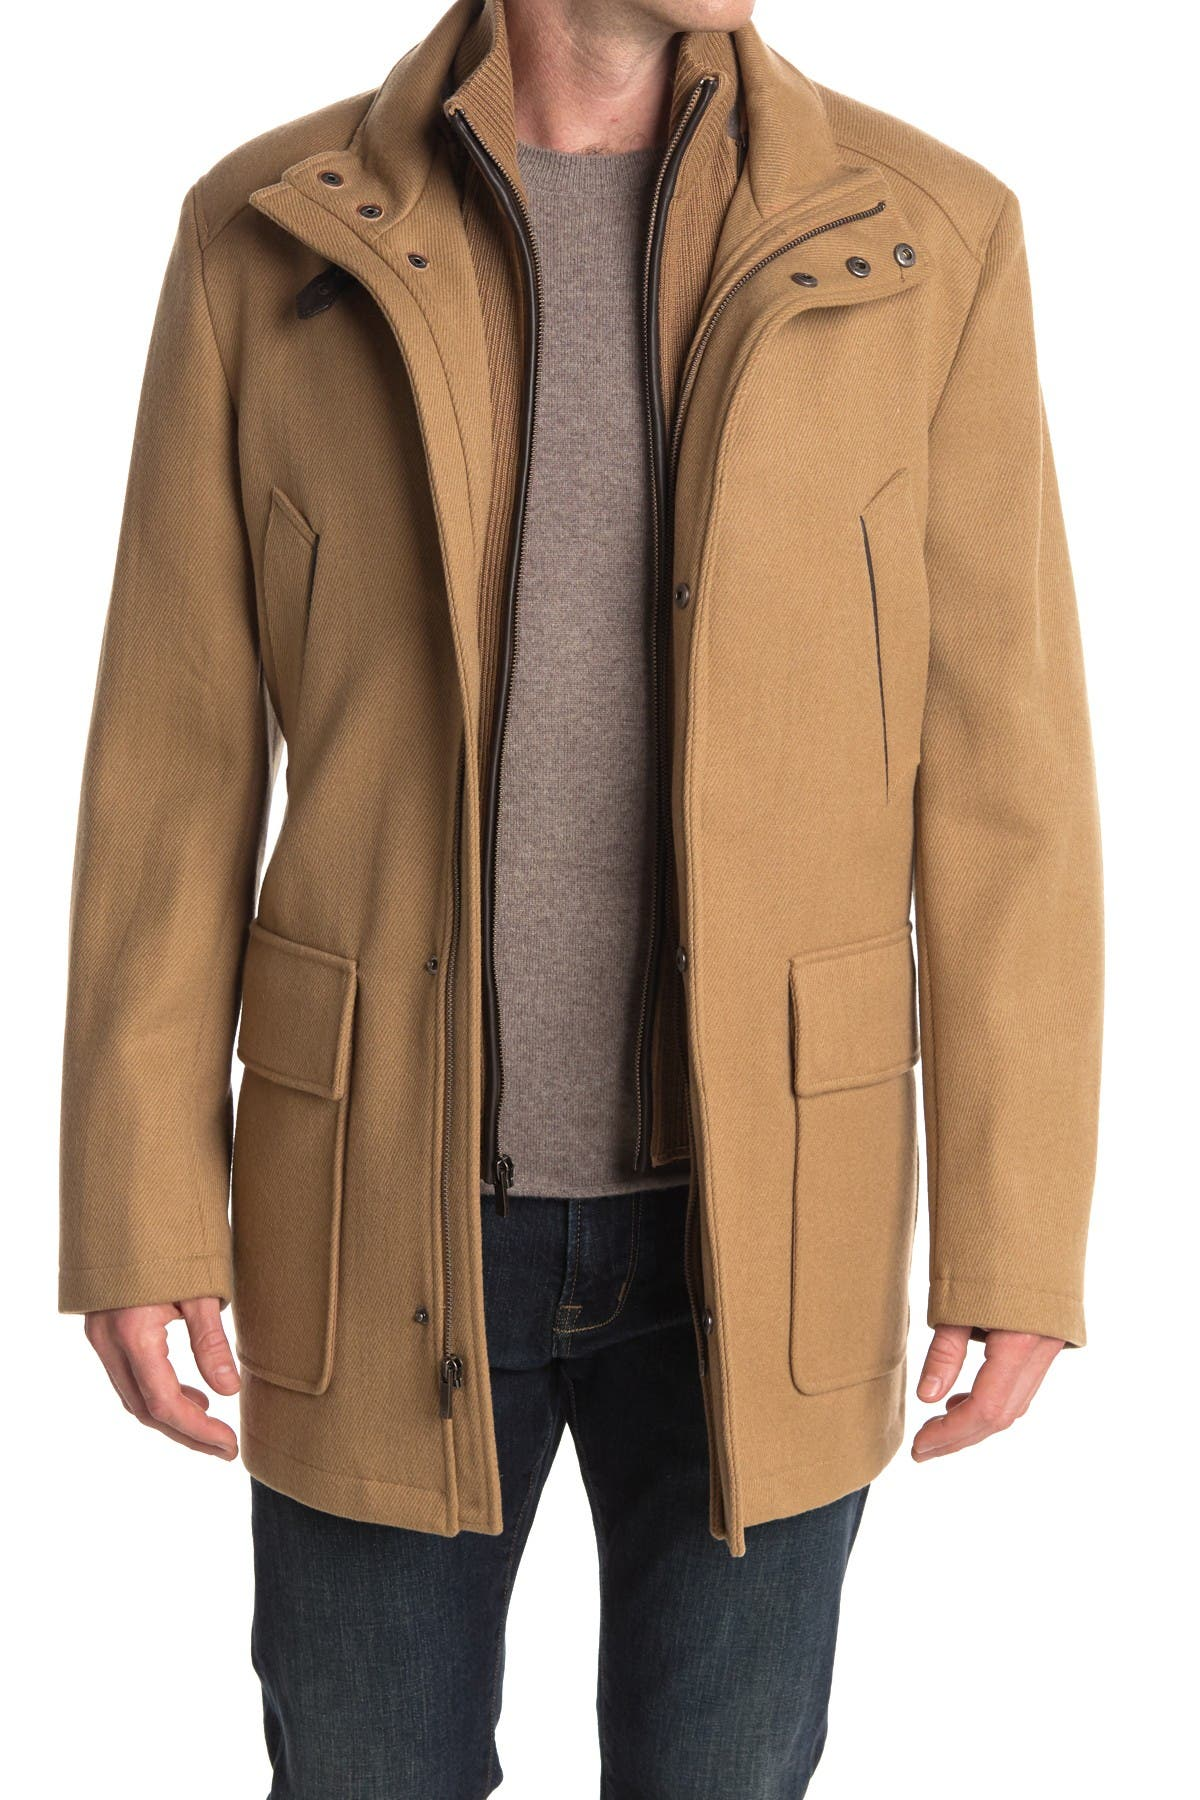 Image of Cole Haan Wool Blend Leather Trim Rib Knit Inset Coat